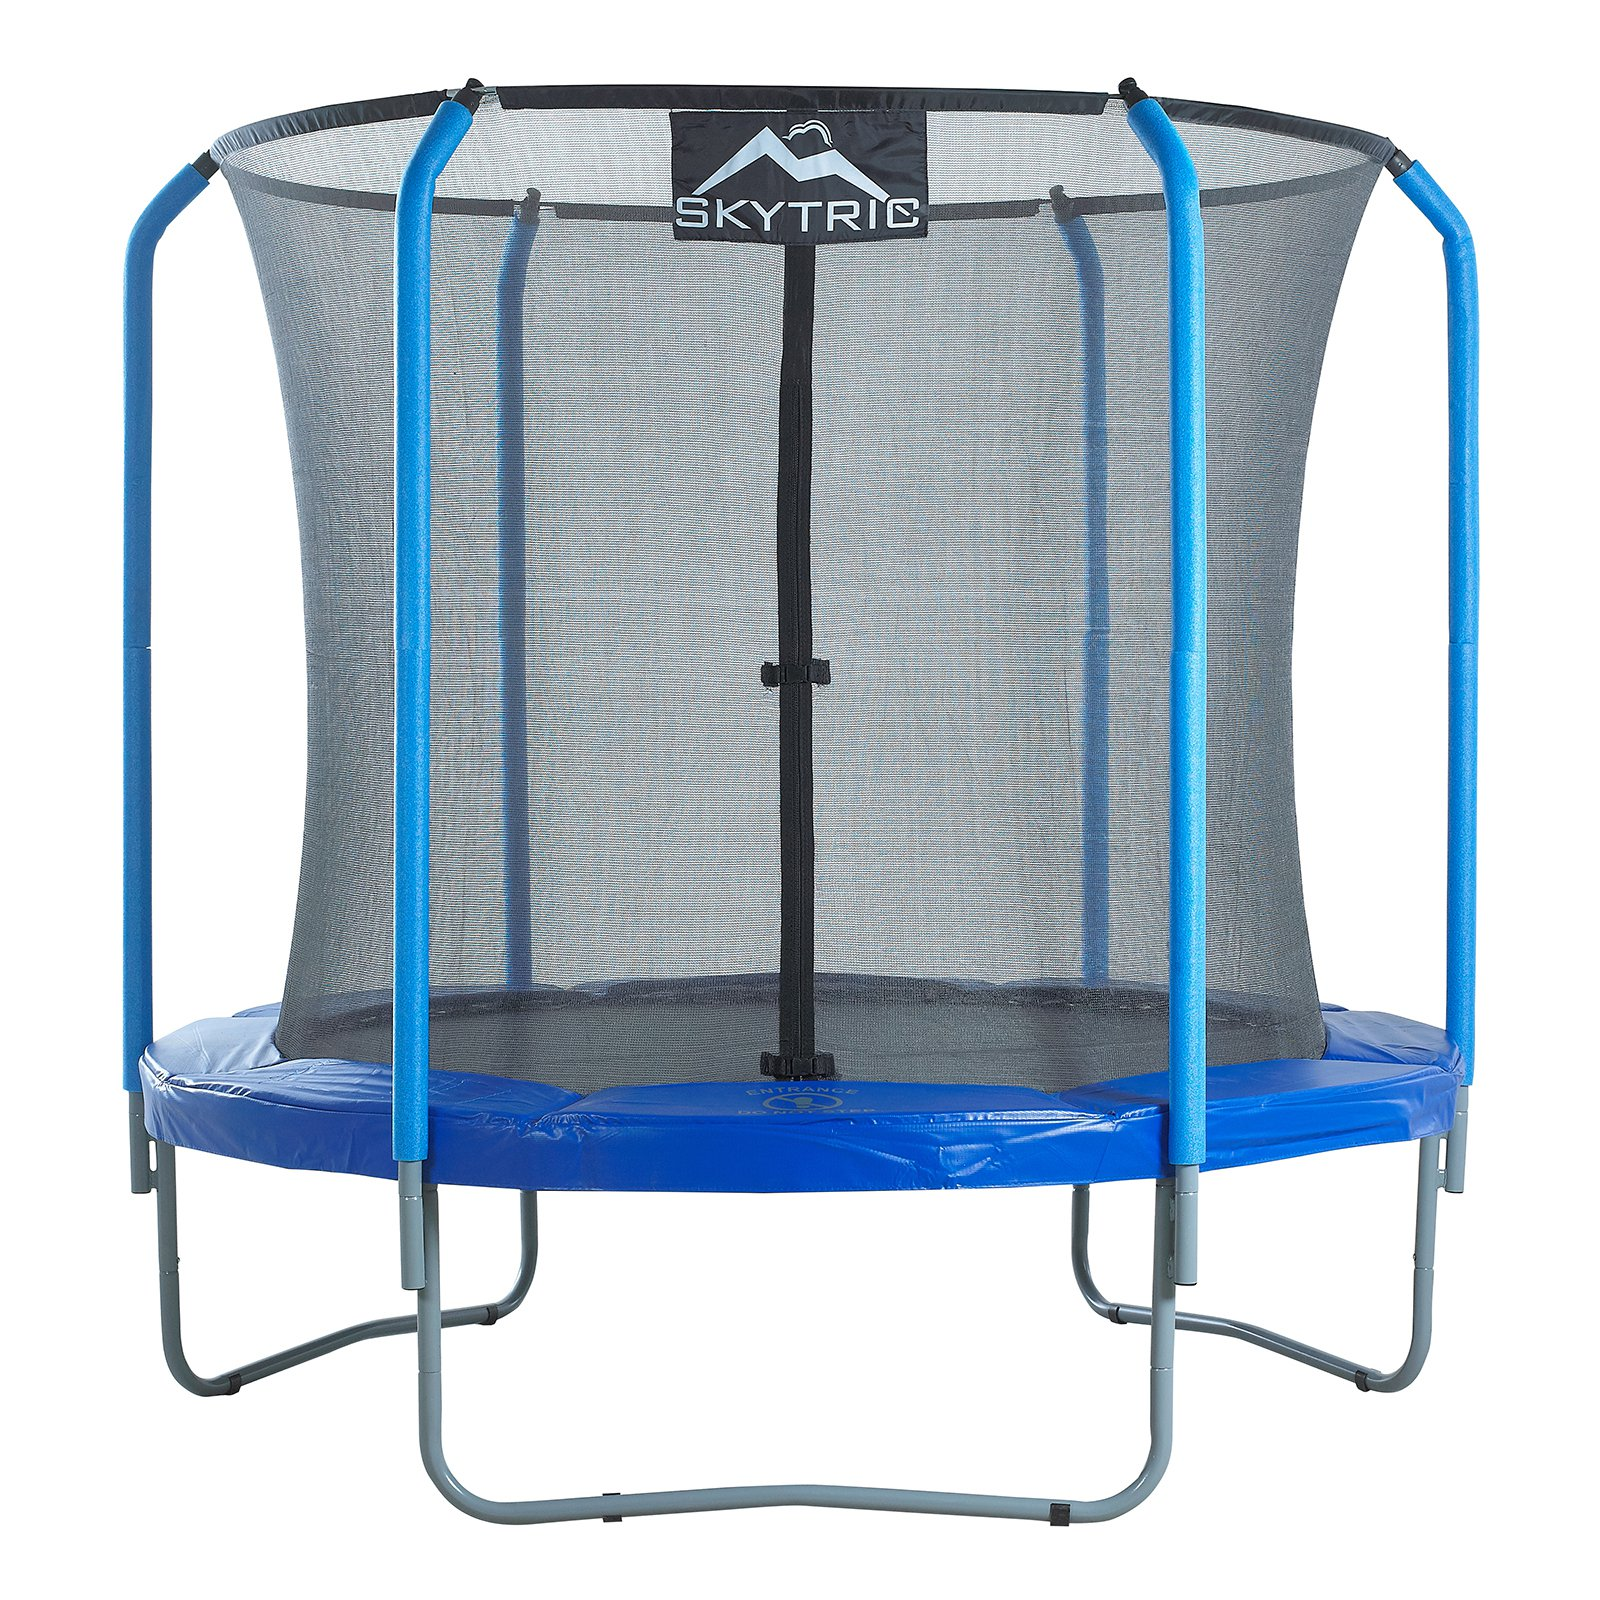 Upper Bounce 8 ft. Trampoline with Top Ring Enclosure